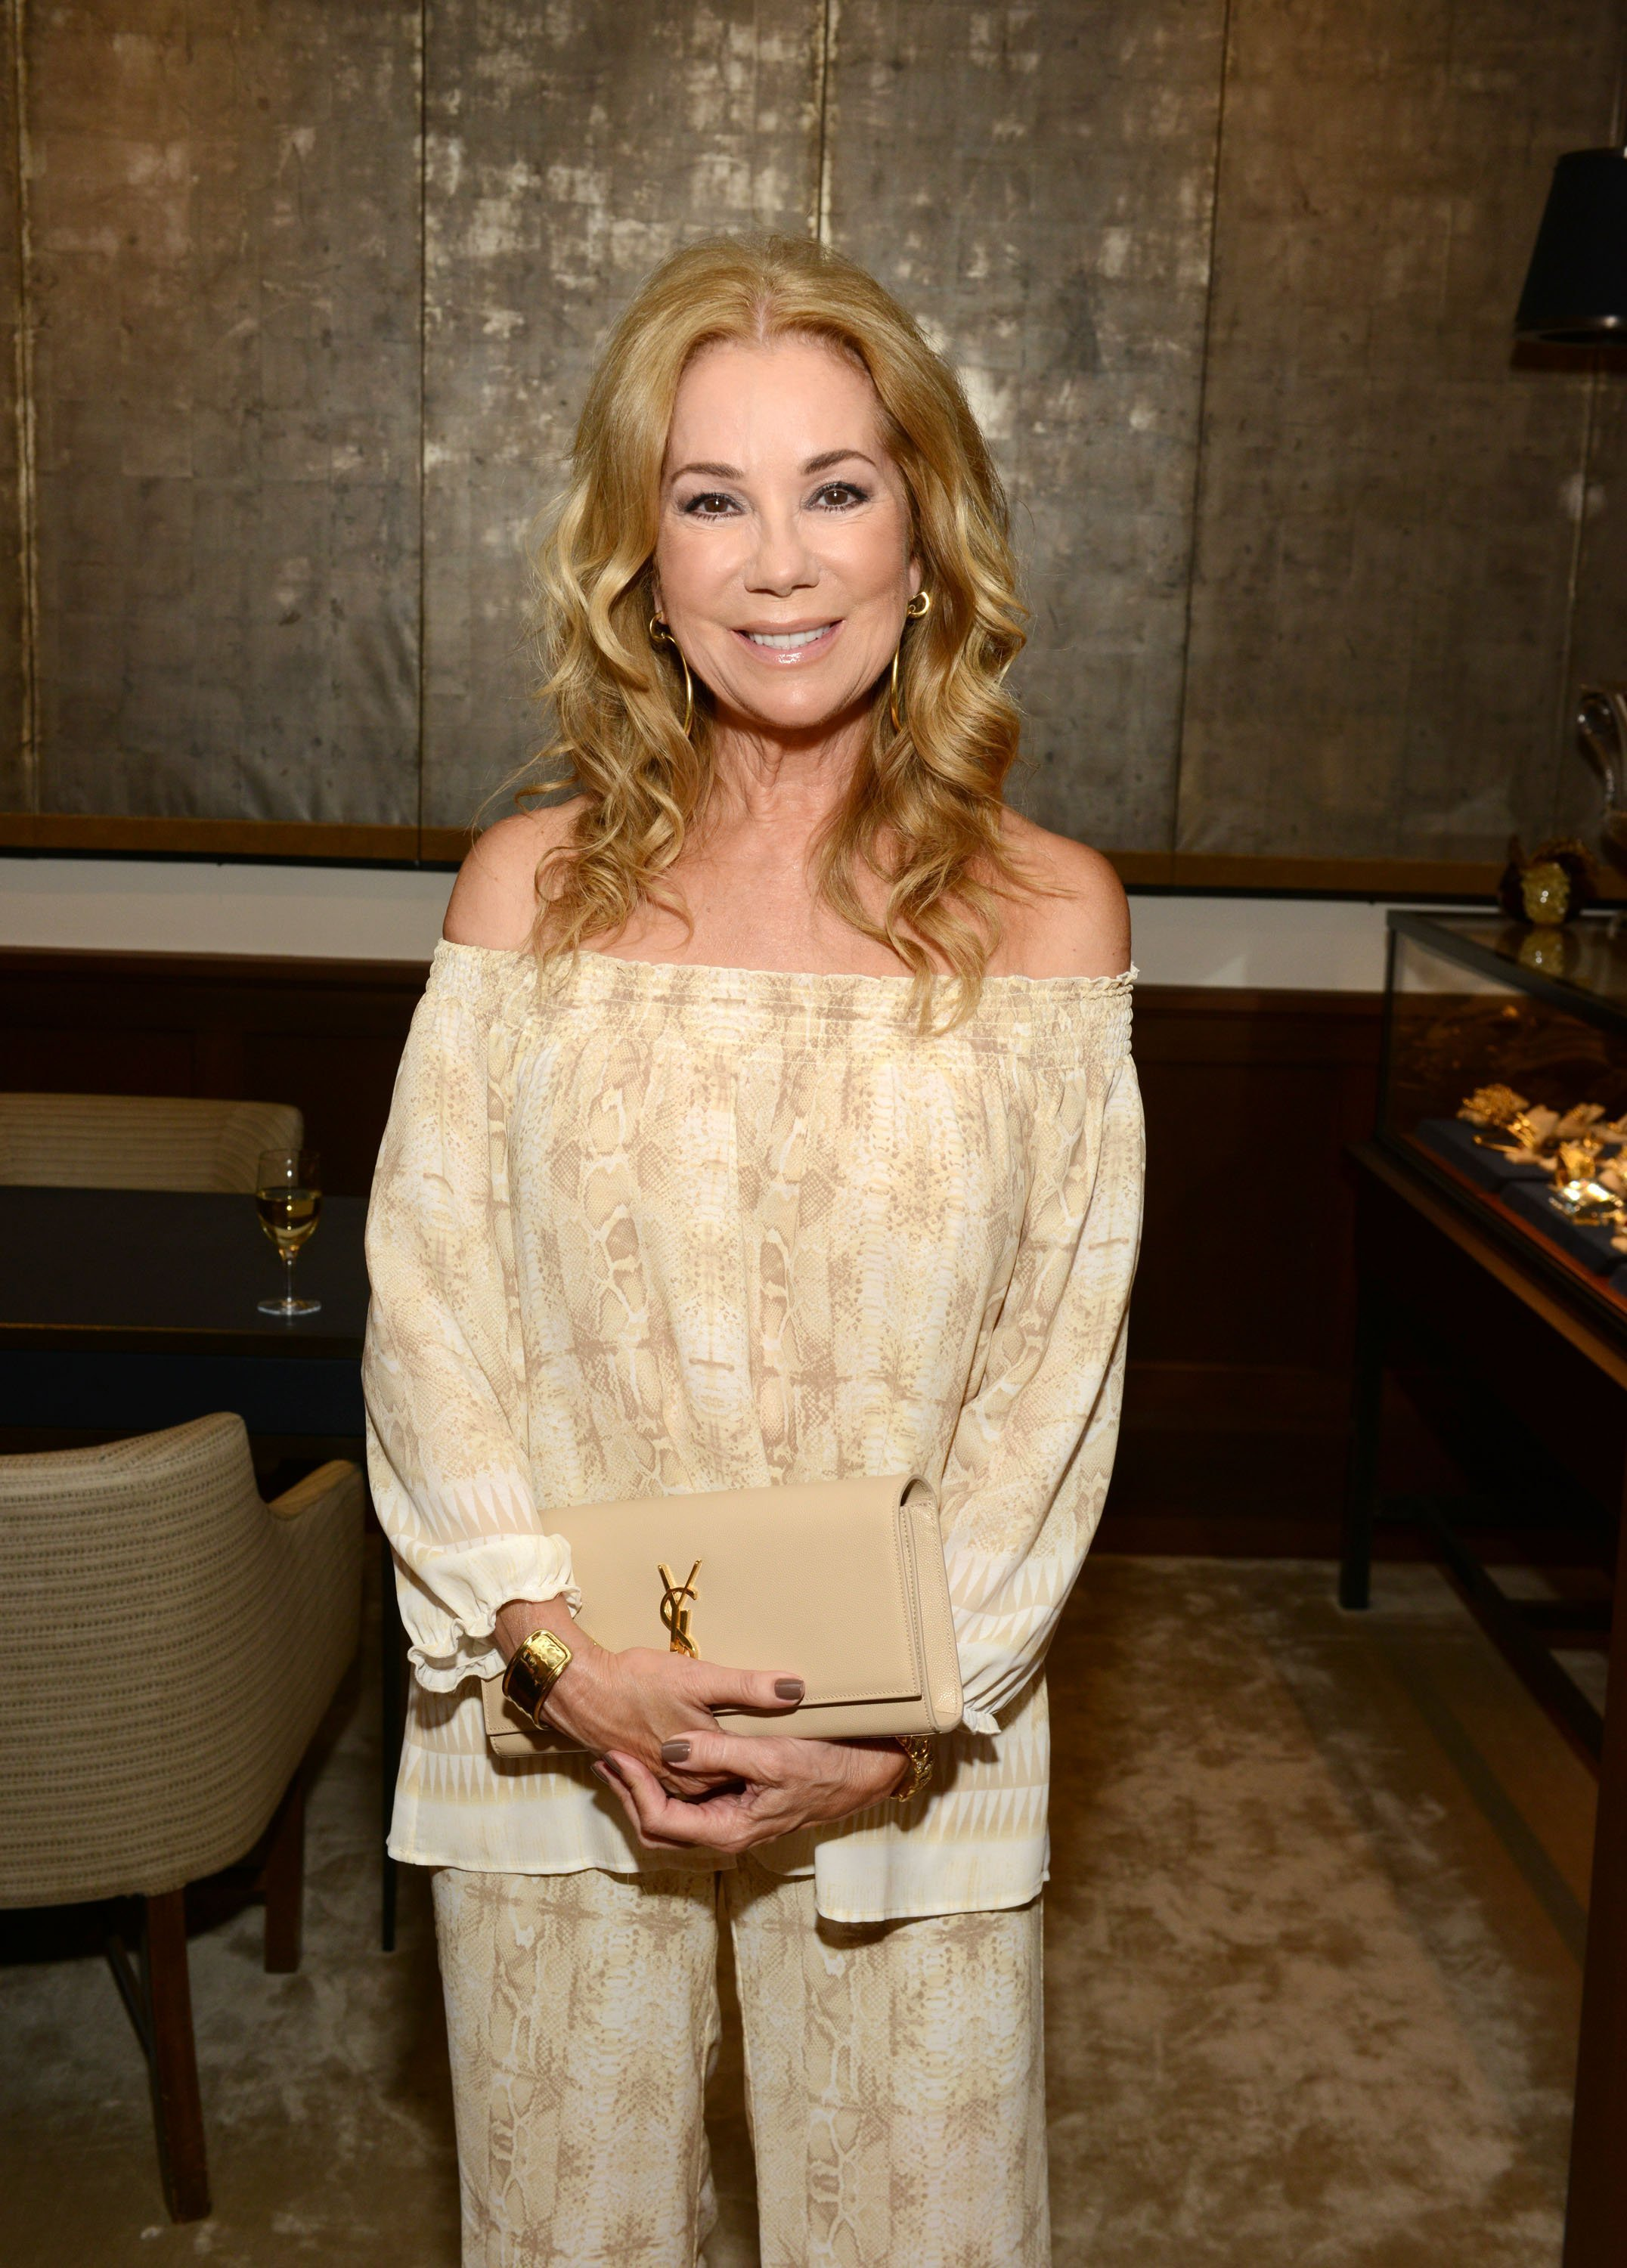 Kathie Lee Gifford on June 10, 2016 at Betteridge in Greenwich, Connecticut | Source: Getty Images